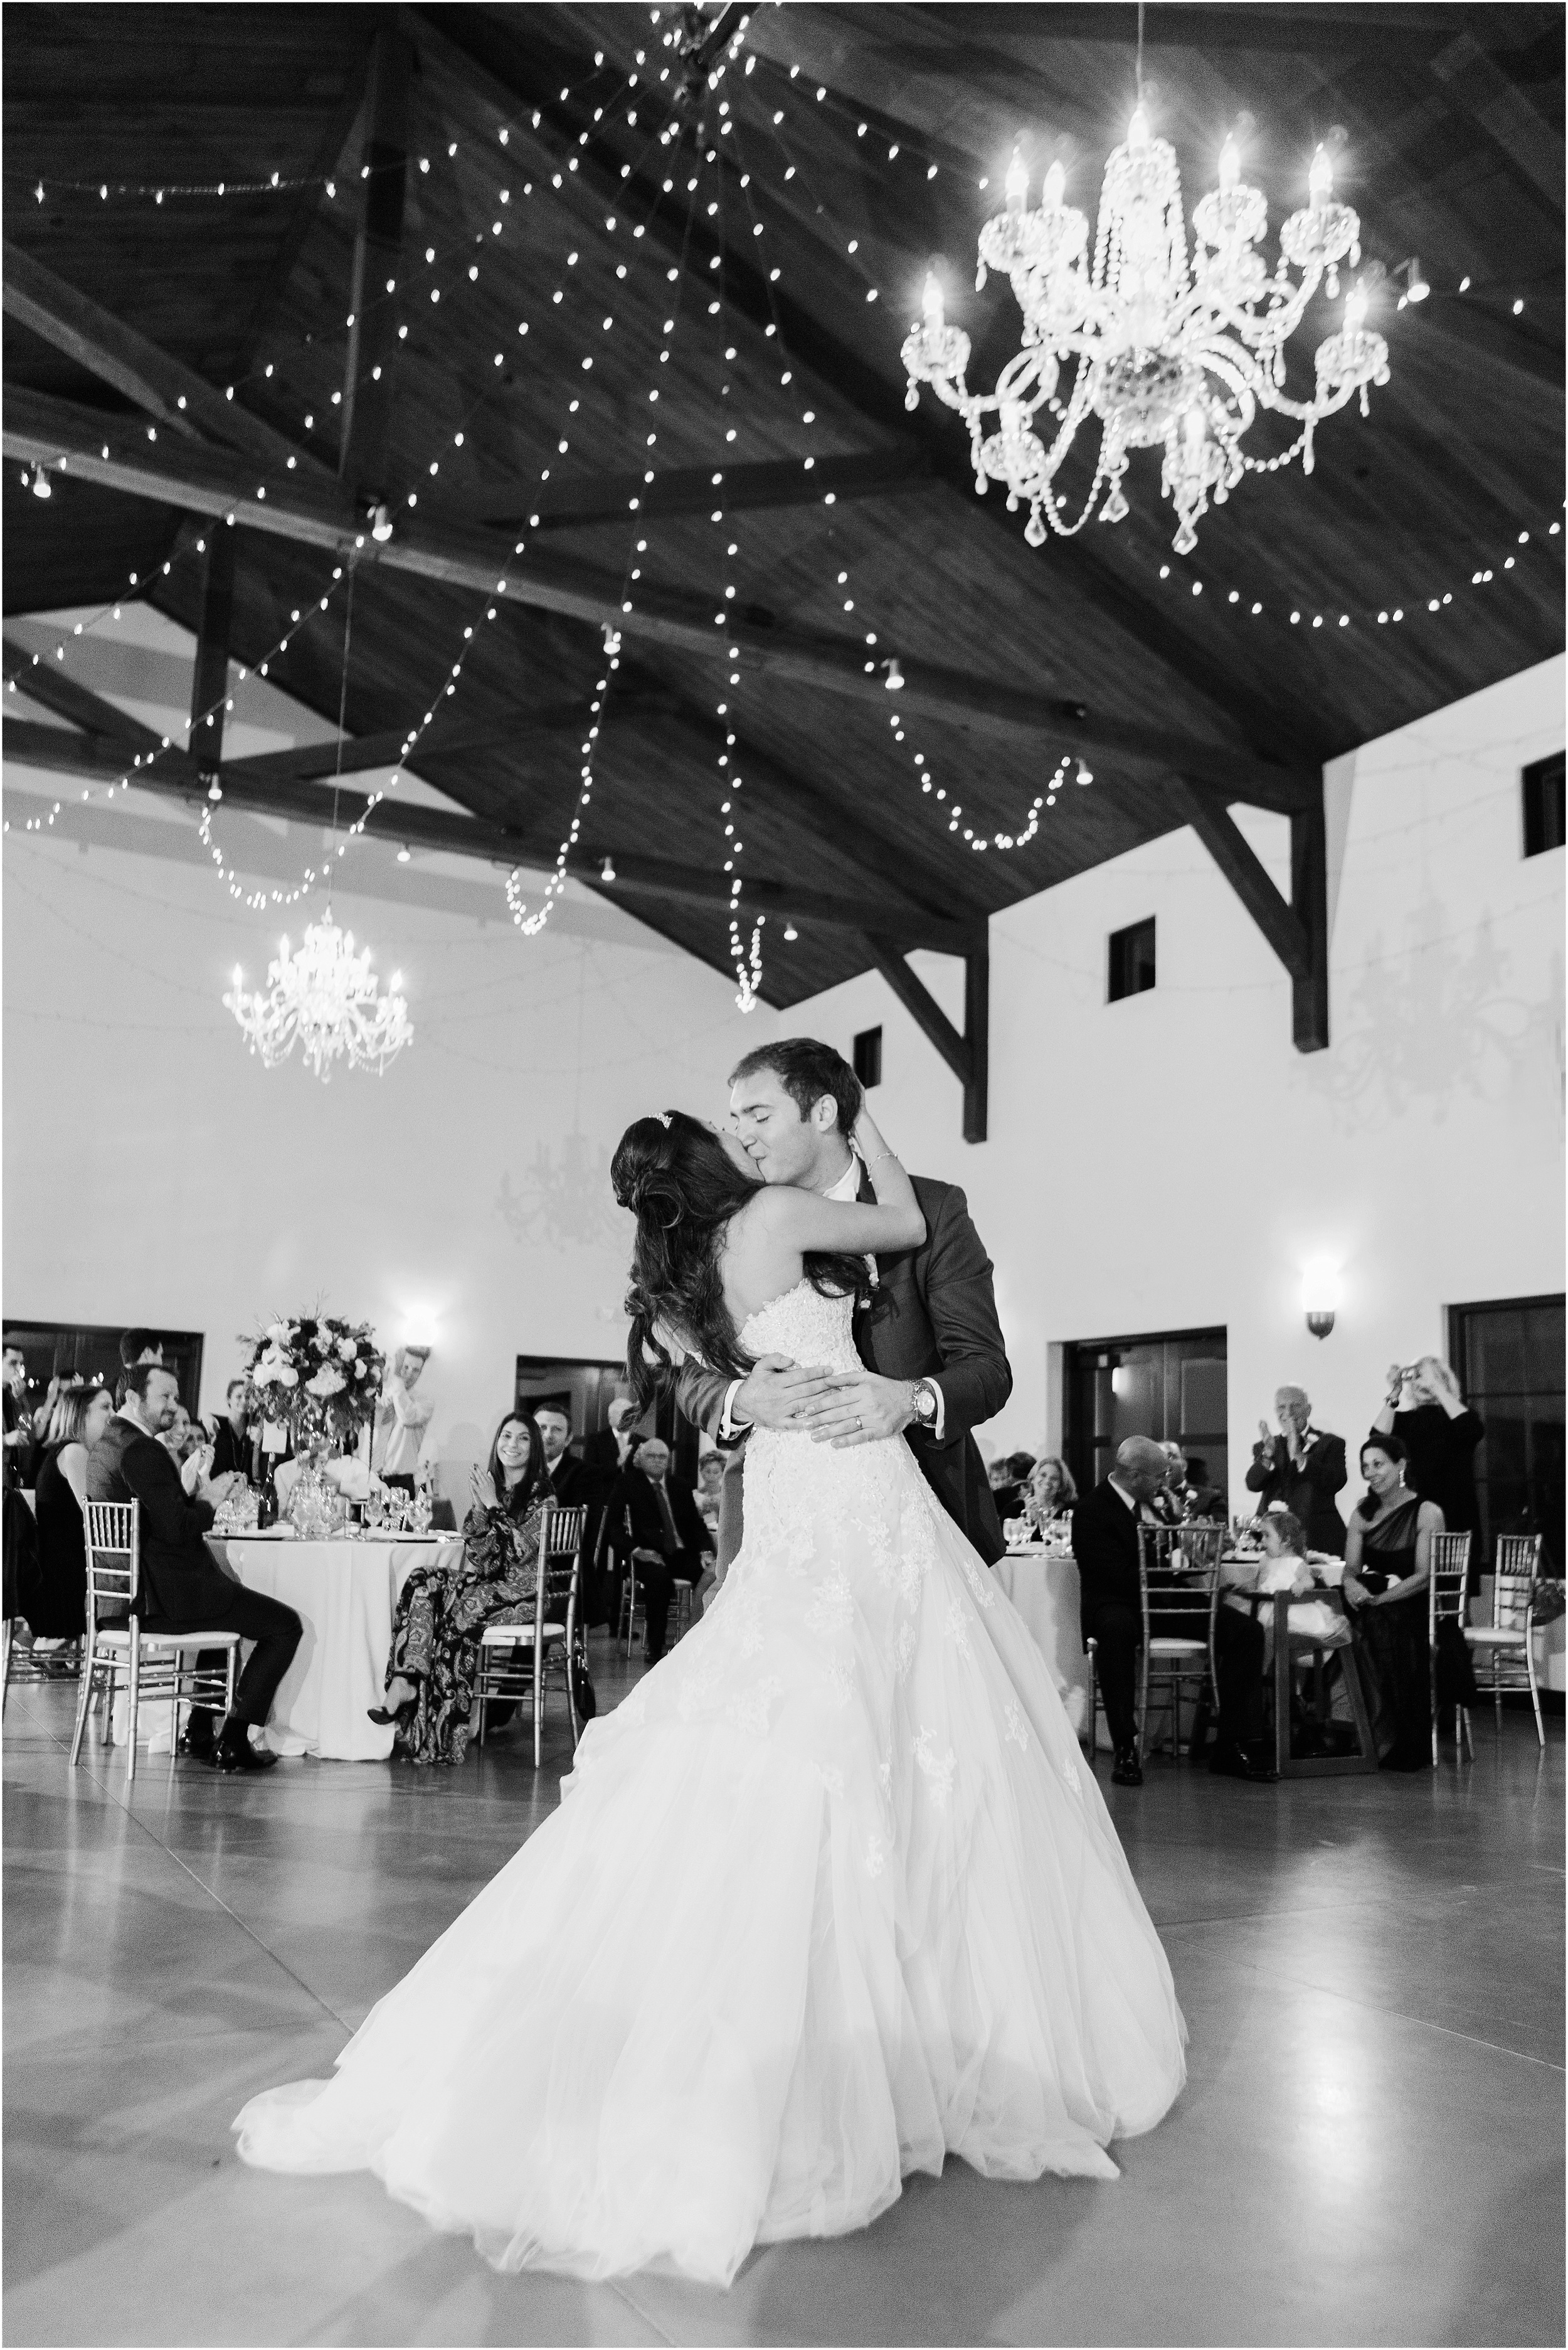 blueberryphotography.com | Viansa Winery Wedding in Sonoma | Blueberry Photography | San Francisco Wedding Photographer